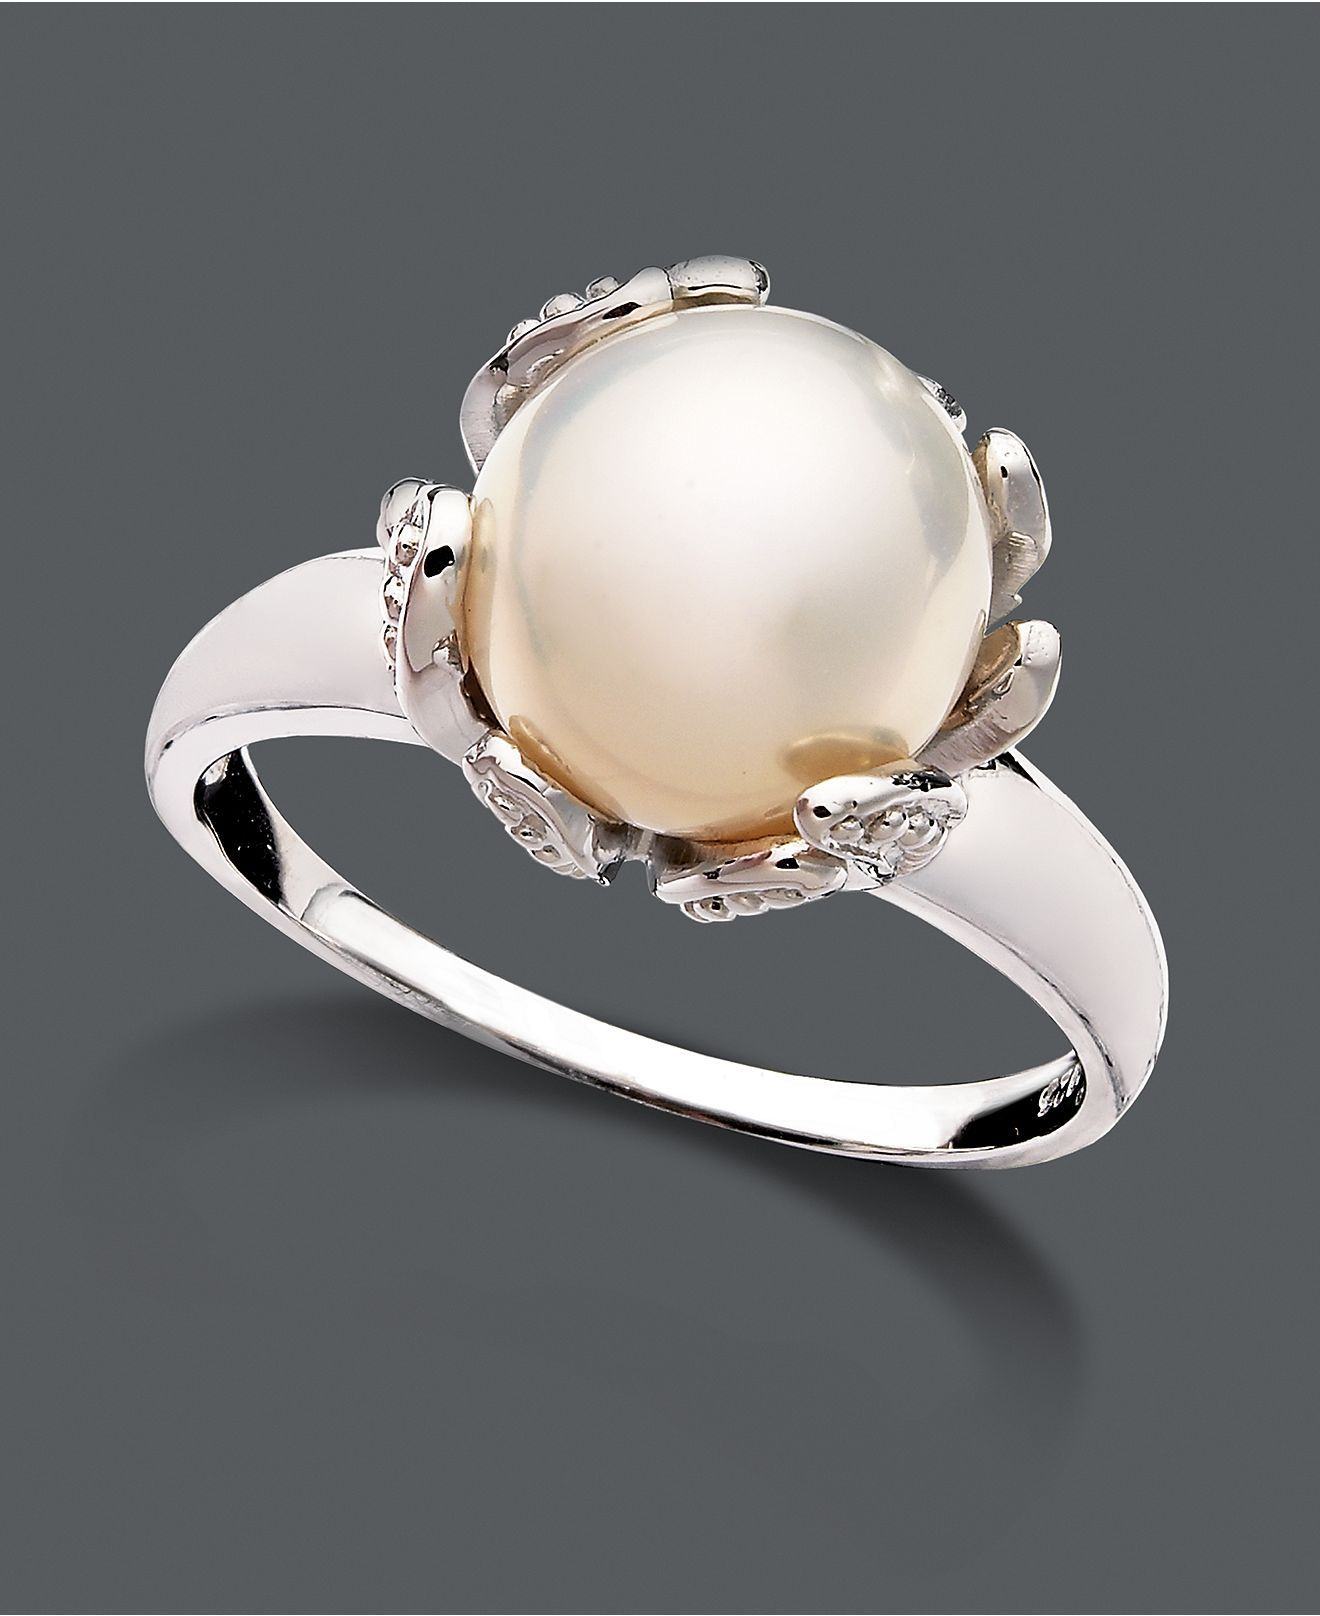 cubic various aaa engagement rings ring white sizes cz view freshwater zircon p quick diamond cultured pearl